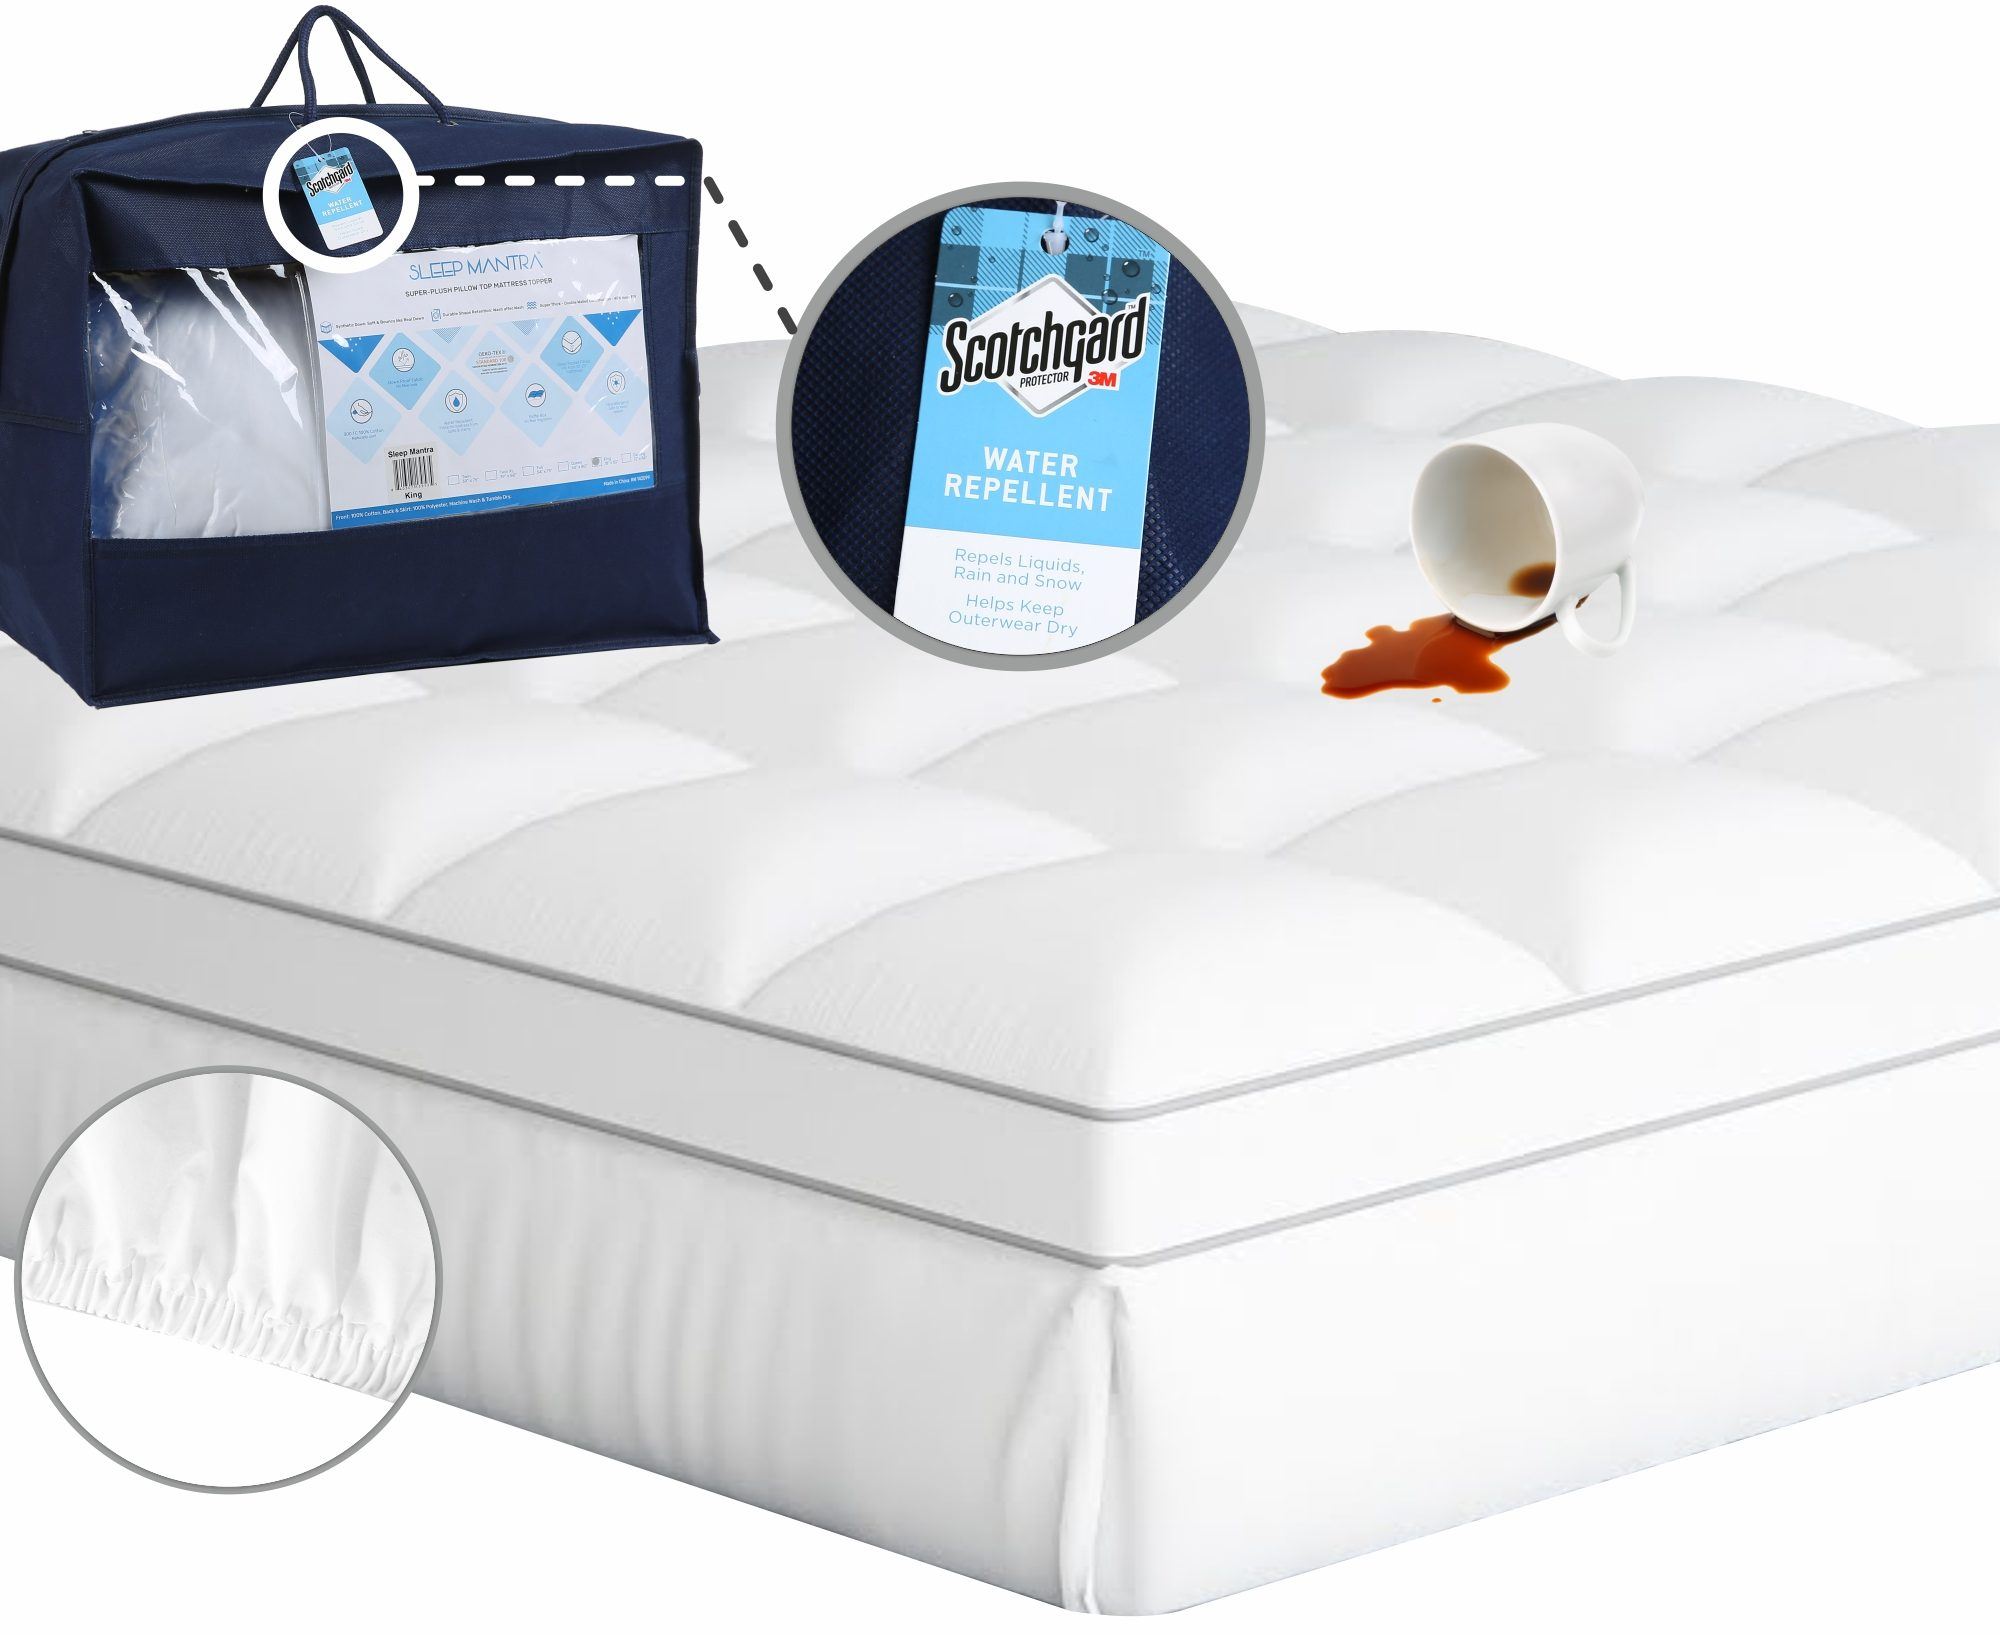 sleep mantra mattress topper with fabric protector